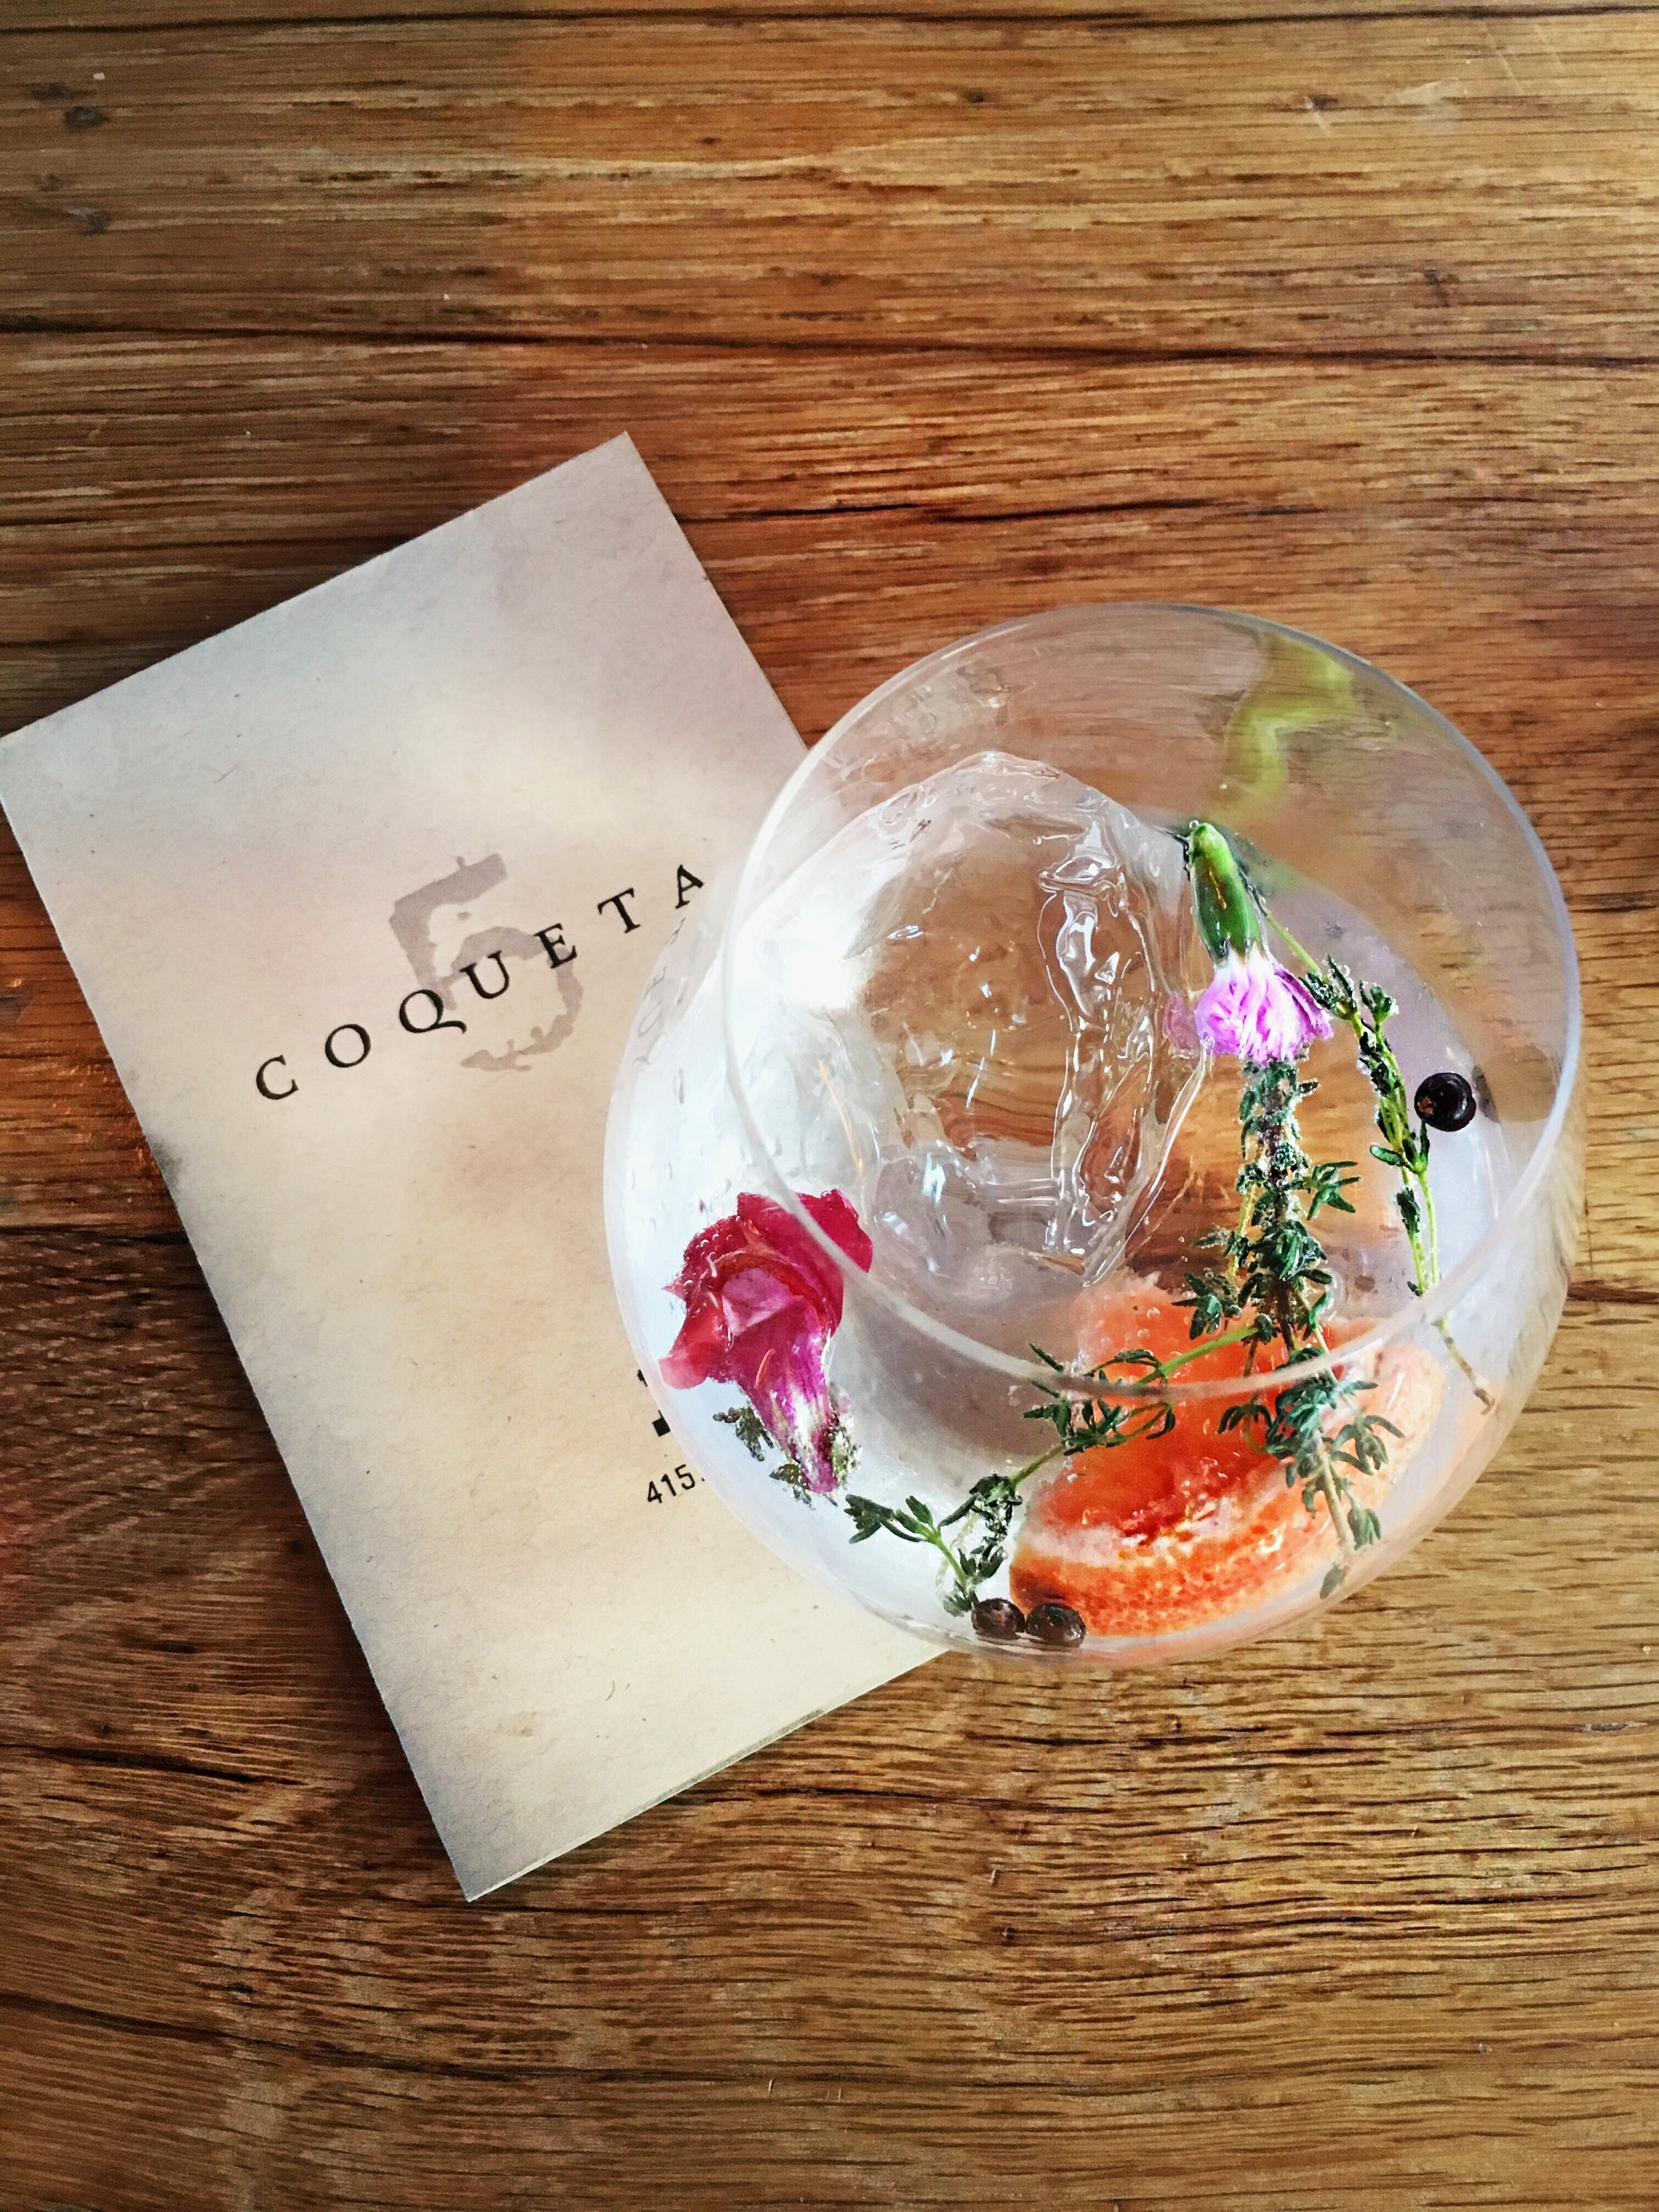 Coqueta - A tapas restaurant located right by the bay (and the Ferry Building) with amazing Spanish food and fabulous cocktails. The bar area is situated to the left (north side) and is typically vibrant, especially during warm, sunny days or prime dinner hours. But be forewarned that it is first-come first-served. The restaurant side understandably more structured and accepts reservations via Resy and OpenTable.Some of the must orders: Patatas Bravas, Octopus, Bikini, Pork Shoulder and the whole Branzino (Sea Bass). As for the drinks, they have an excellent selection of Spanish wine.(obviously) but they are also known for their gin & tonic cocktails. Some of my favorites include the Conquistador, a tart and fennel-based G&T that tastes far better than it sounds; and the Barça Gin & Tonic (pictured) with a citrus-herbaceous element.